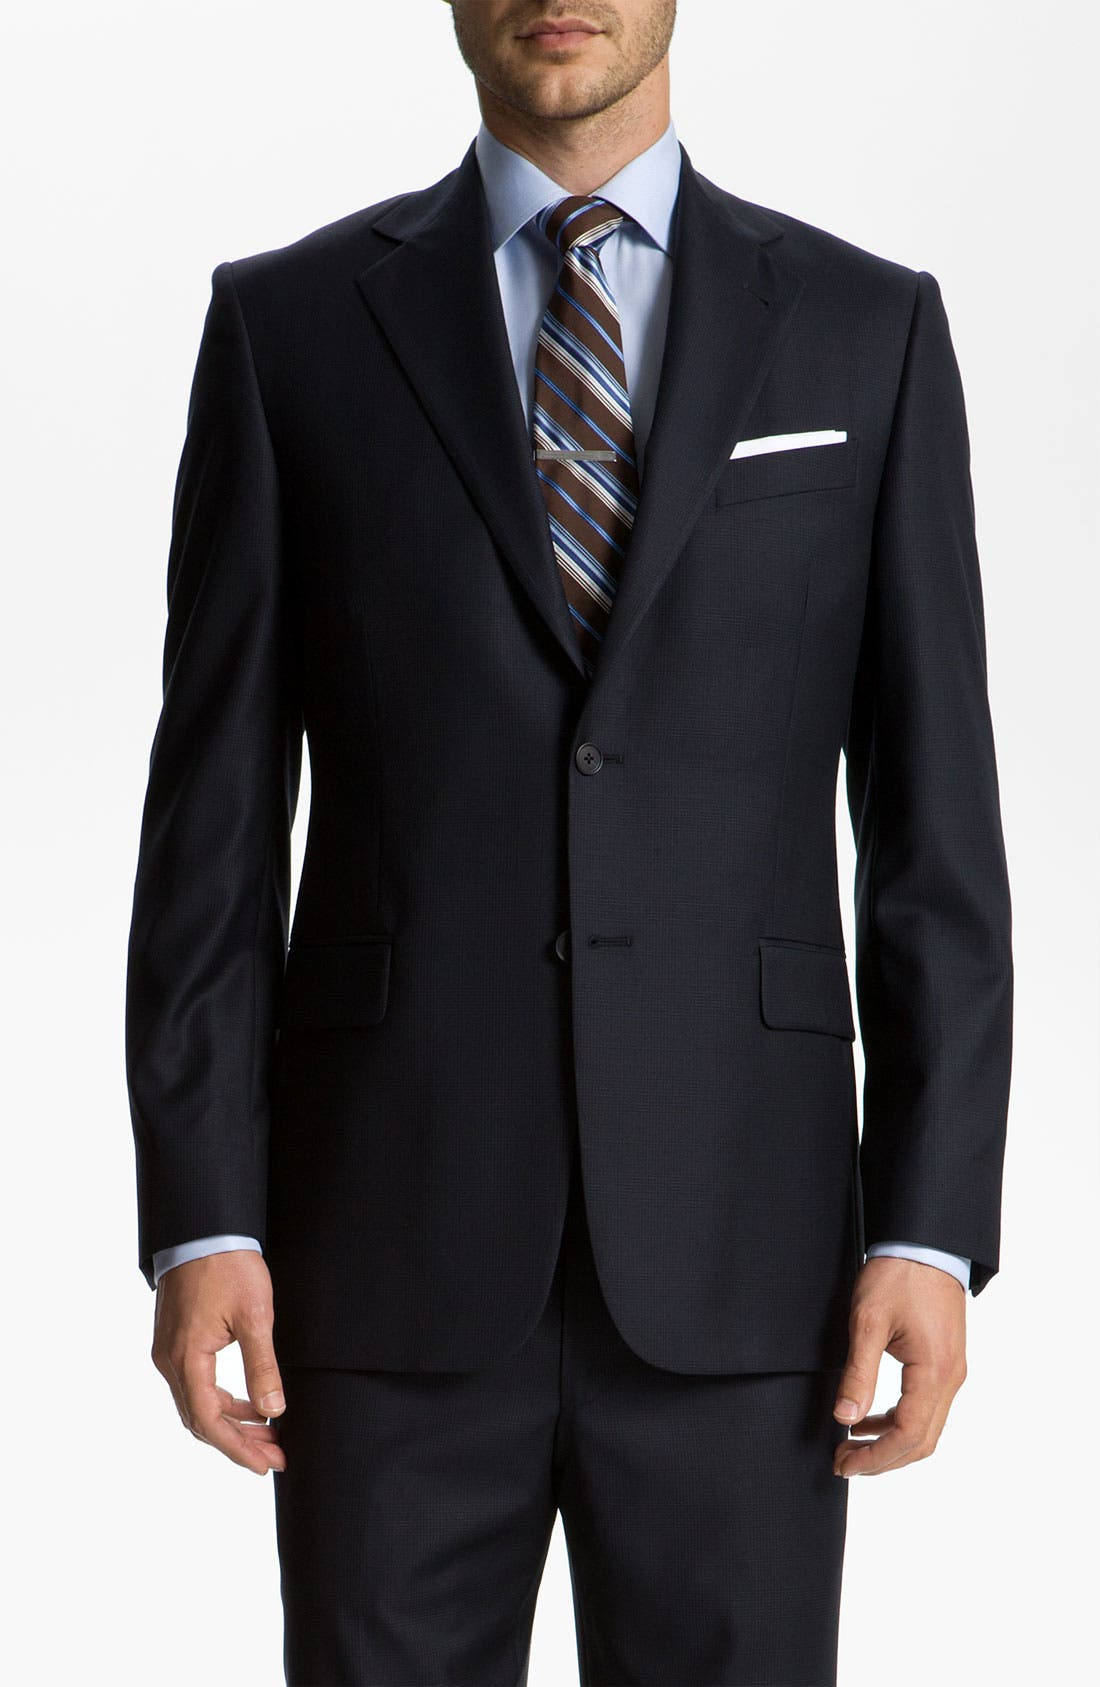 Alternate Image 1 Selected - Joseph Abboud 'Signature Silver' Suit